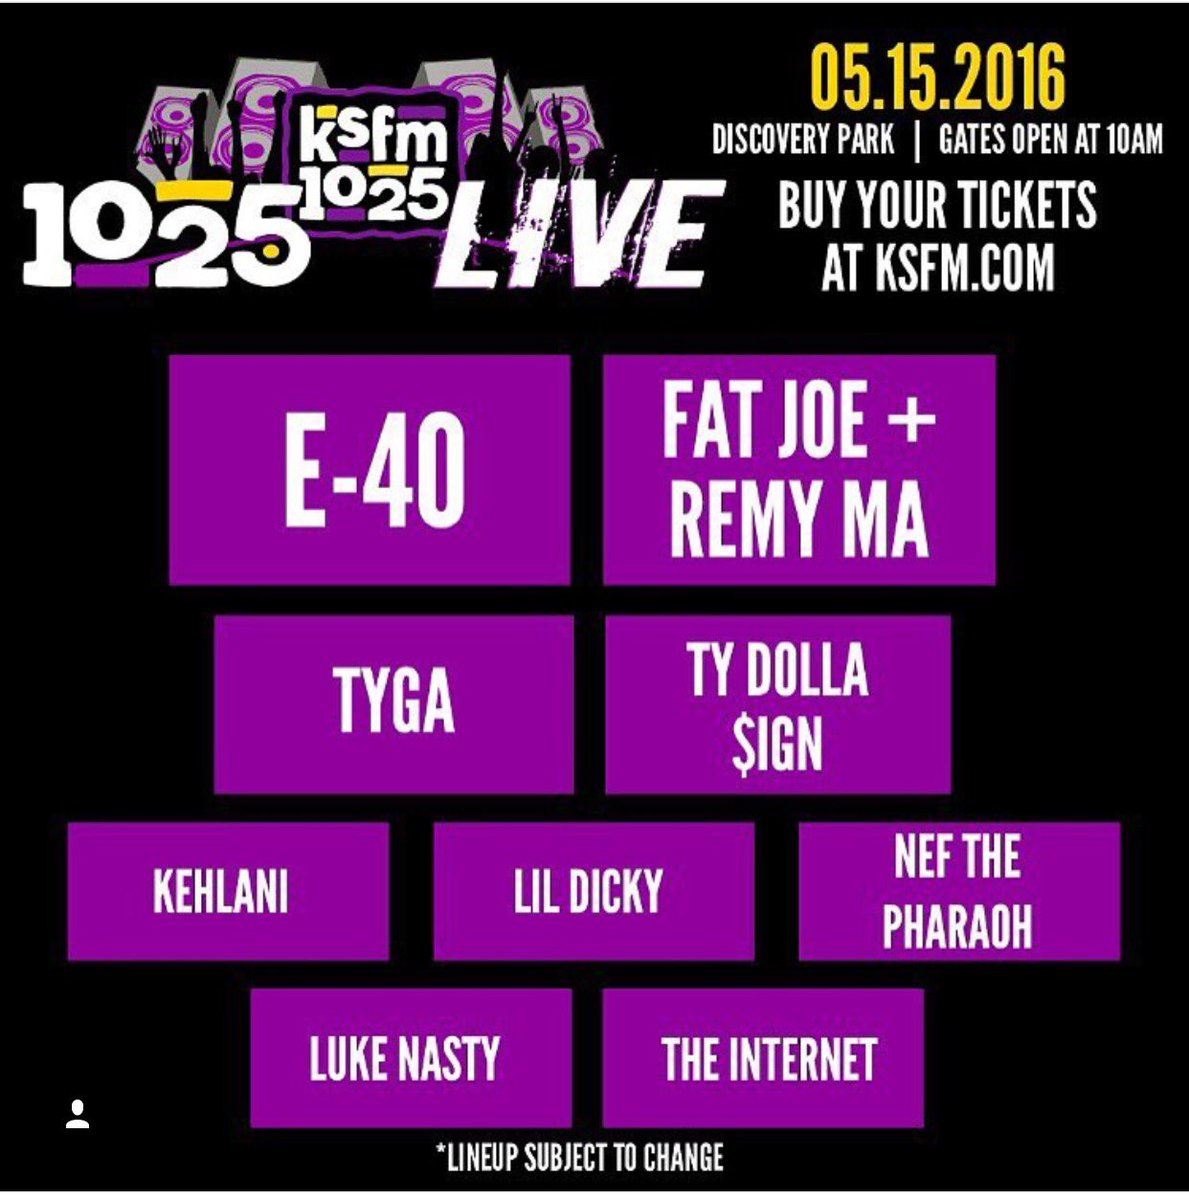 It's about to be LIVE in Sac! Get your tix asap they R already moving fast! #1025live https://t.co/iGH7FmDjSe https://t.co/fVrfizAyzK